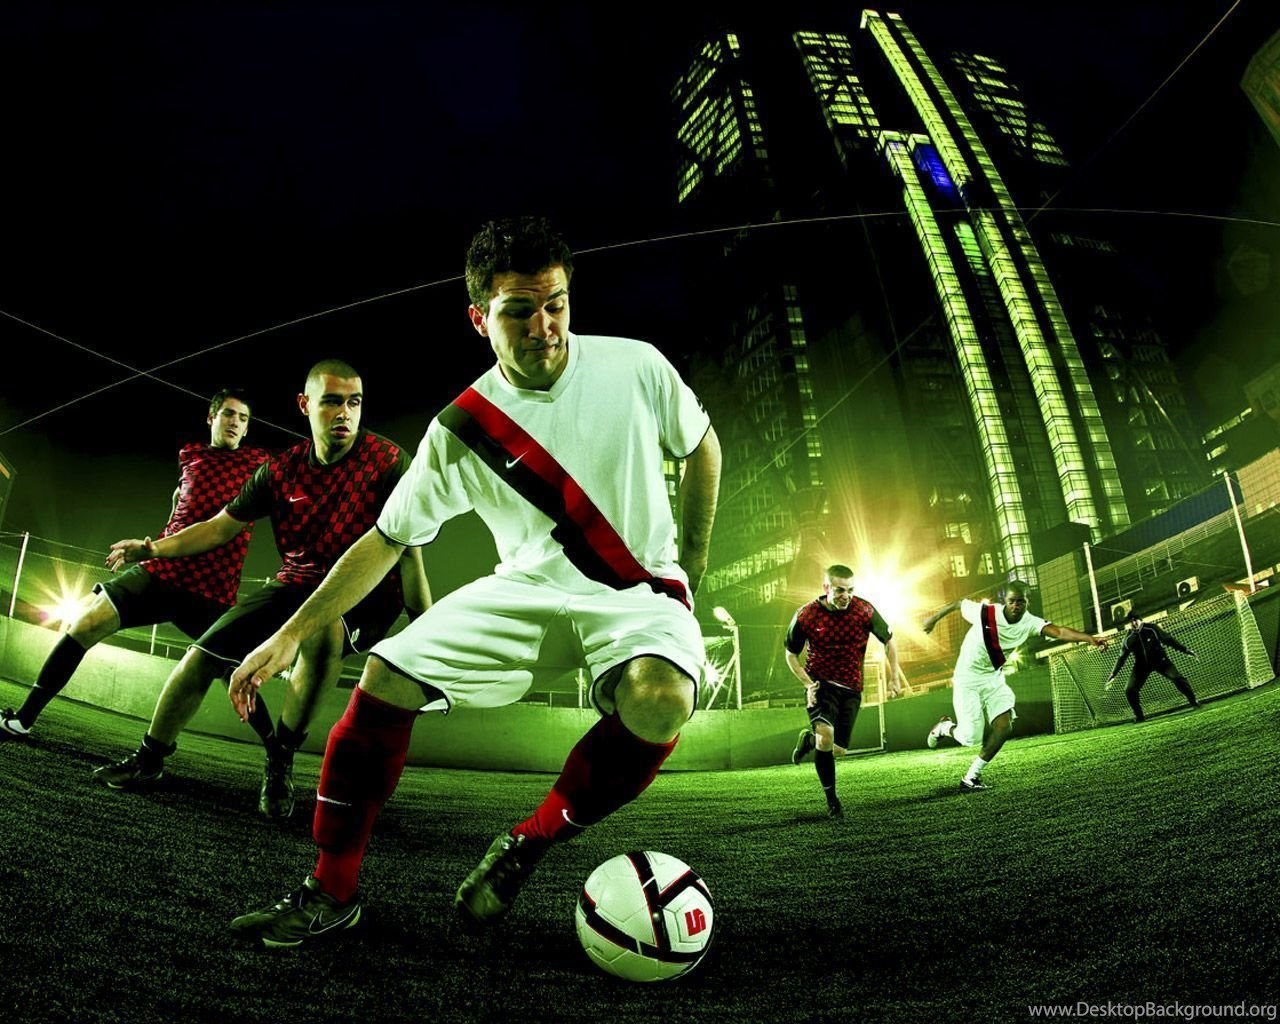 Nike Wallpapers Soccer Desktop Background